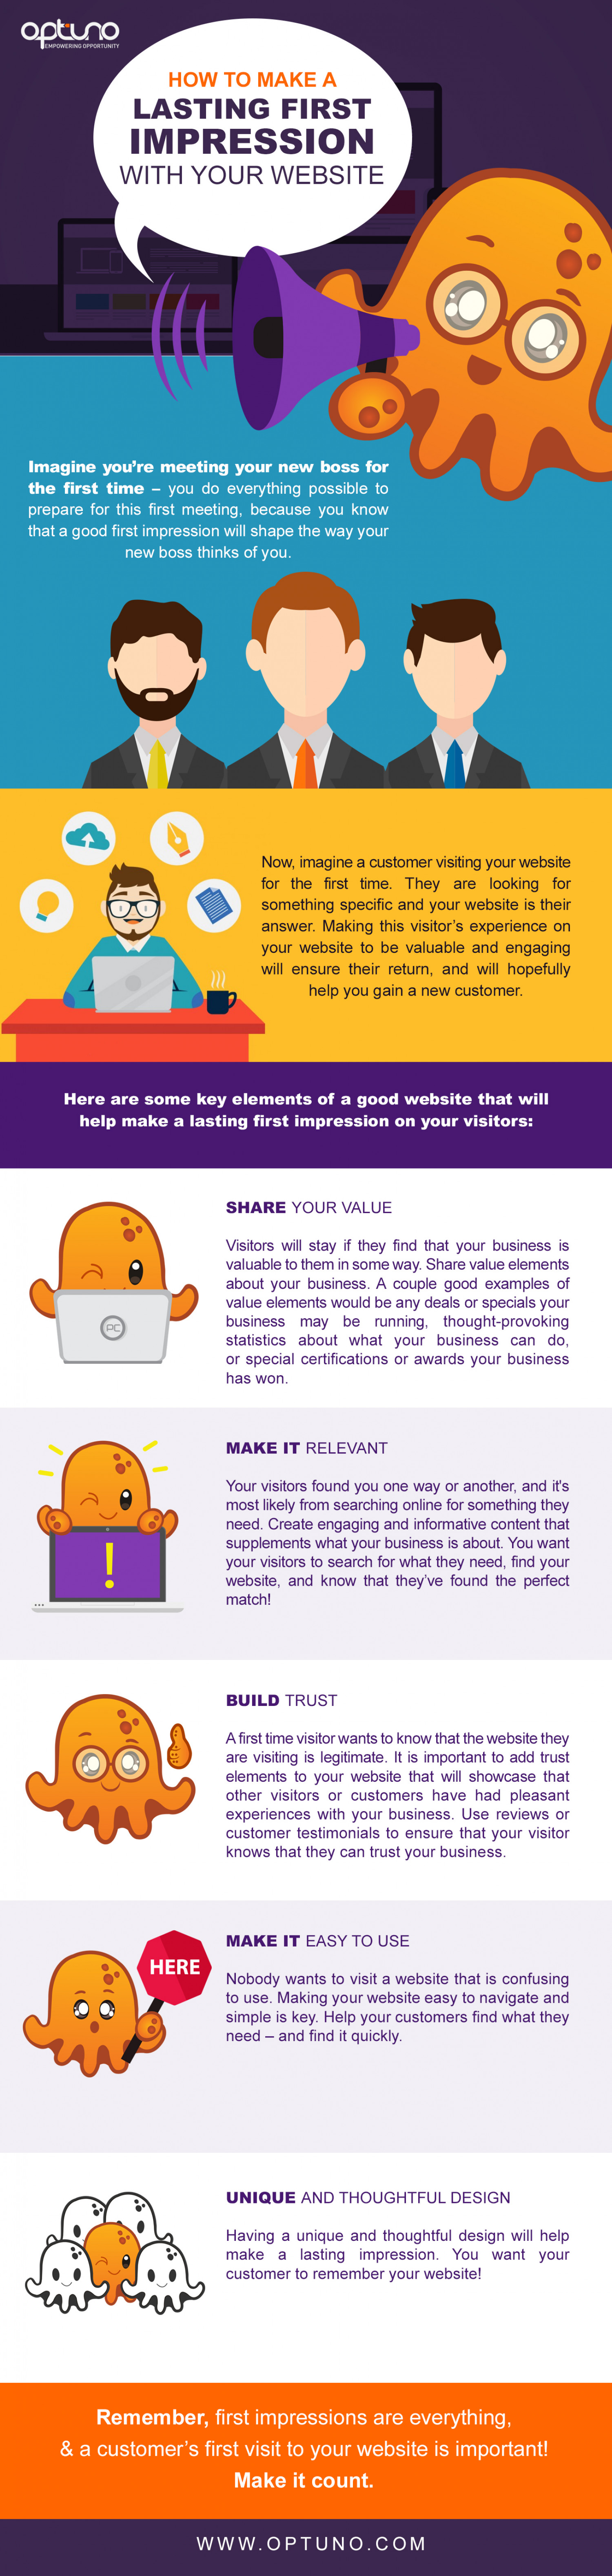 How to Make a Lasting First Impression With Your Website Infographic